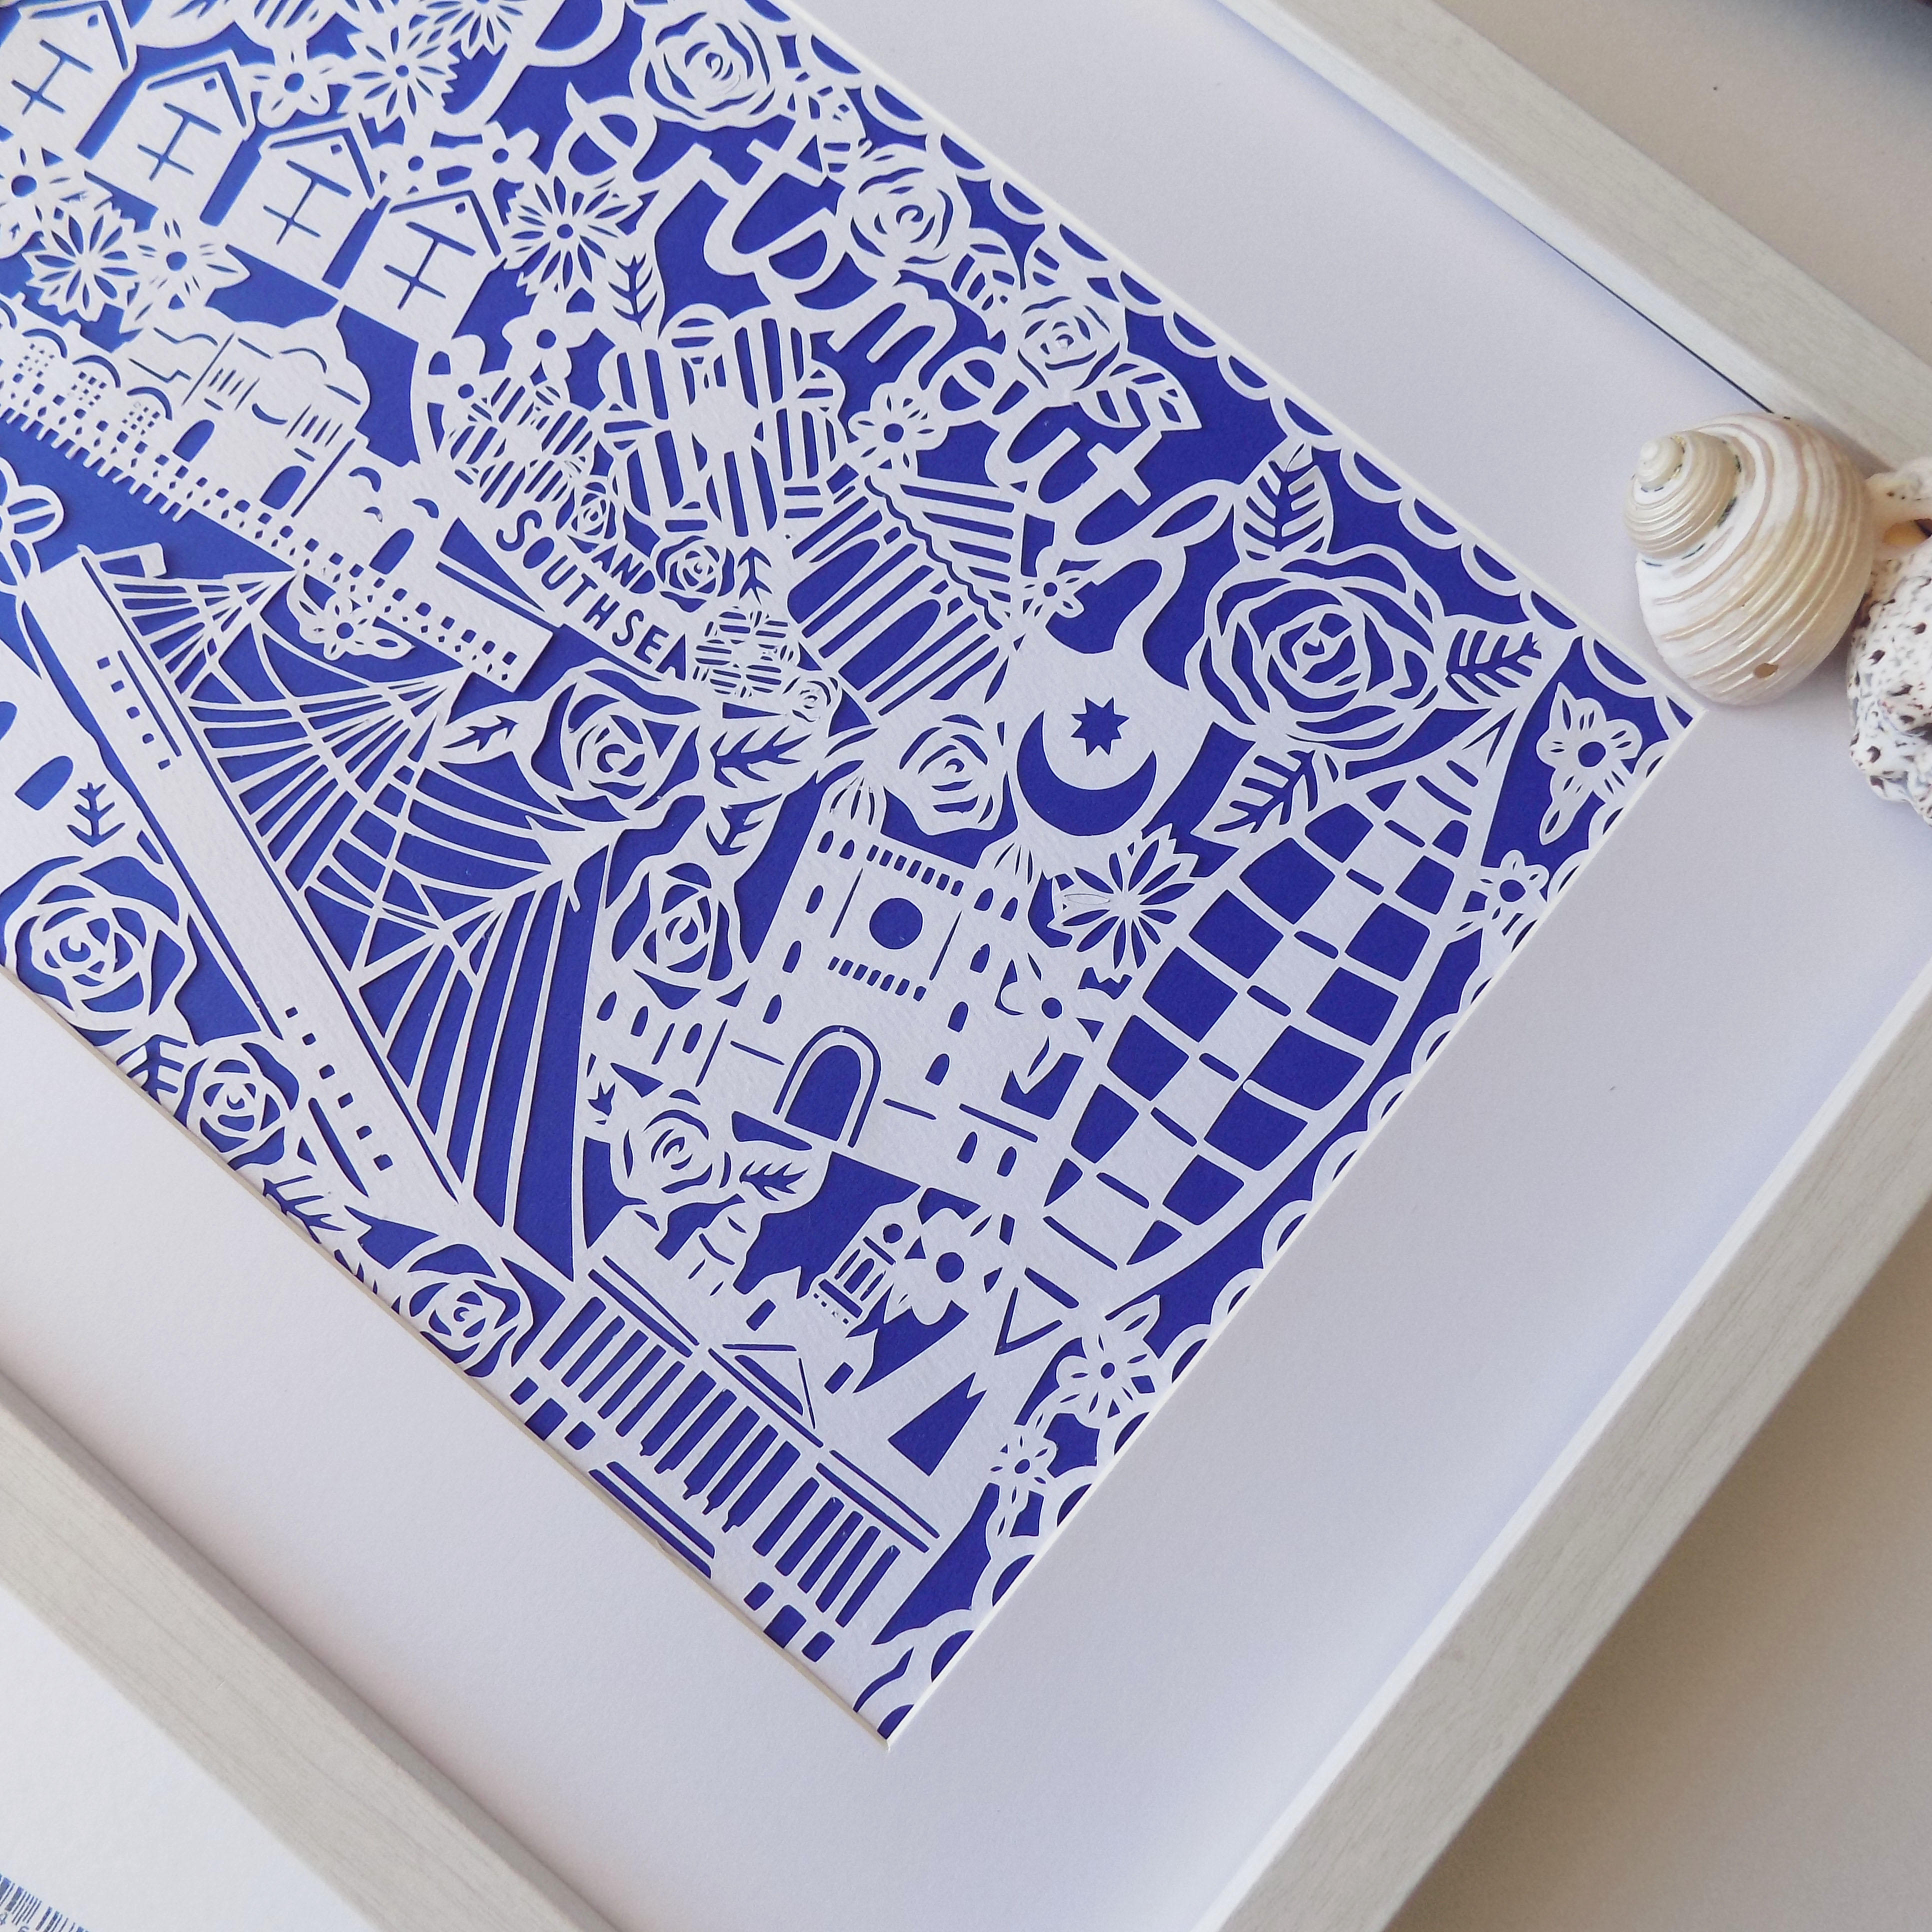 A second close up of a Portsmouth Paper Cut.